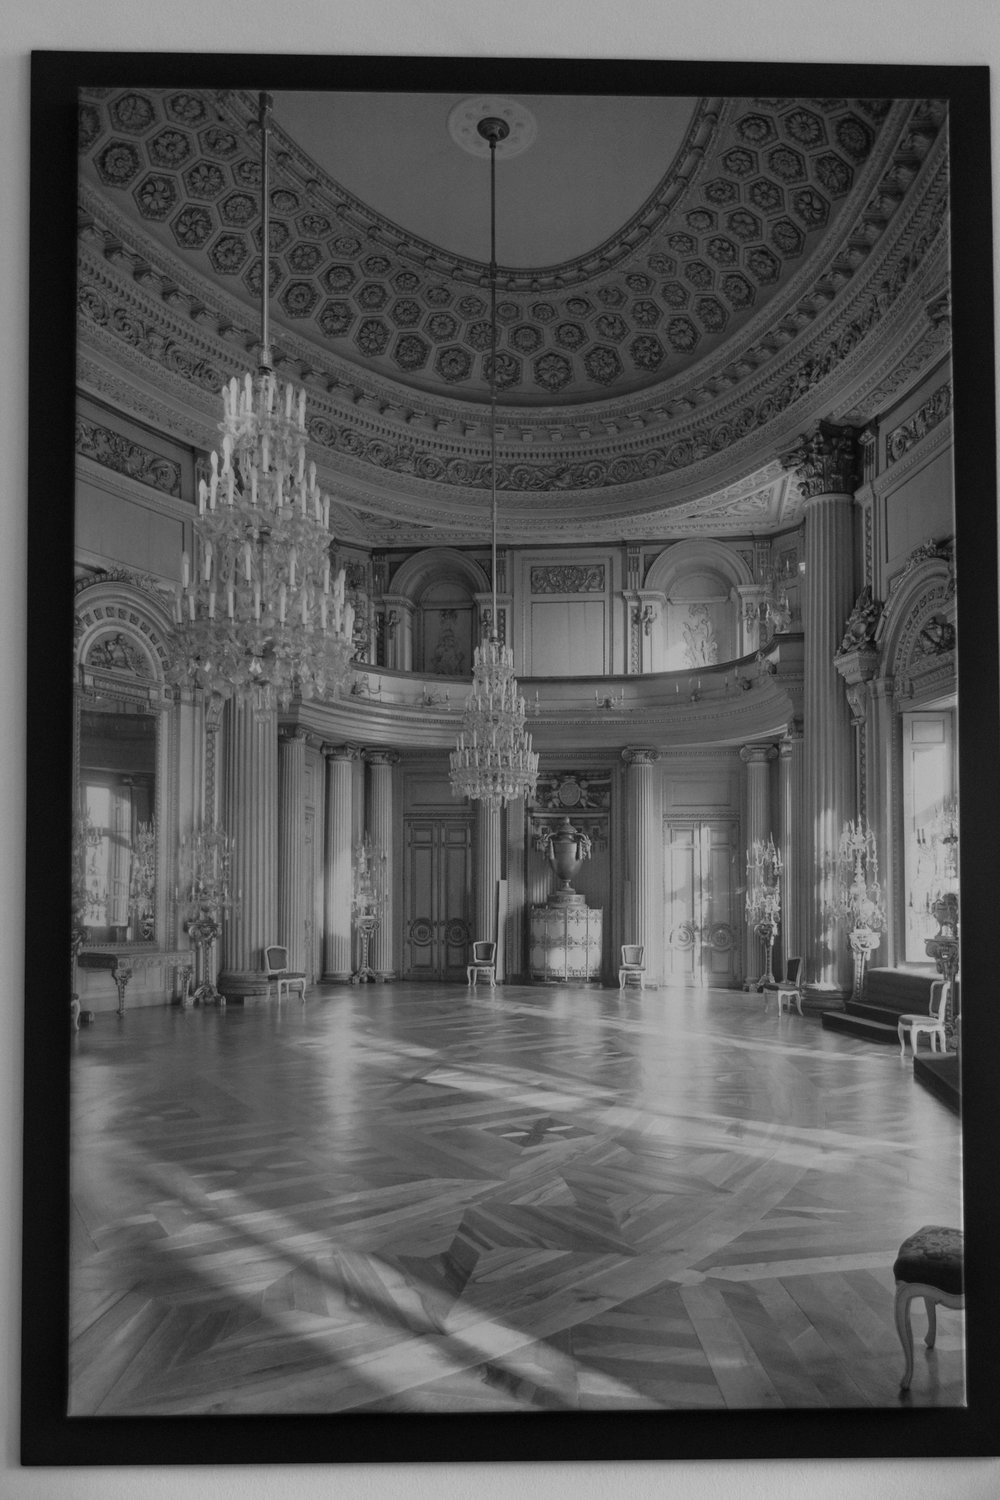 image of interior before WWII